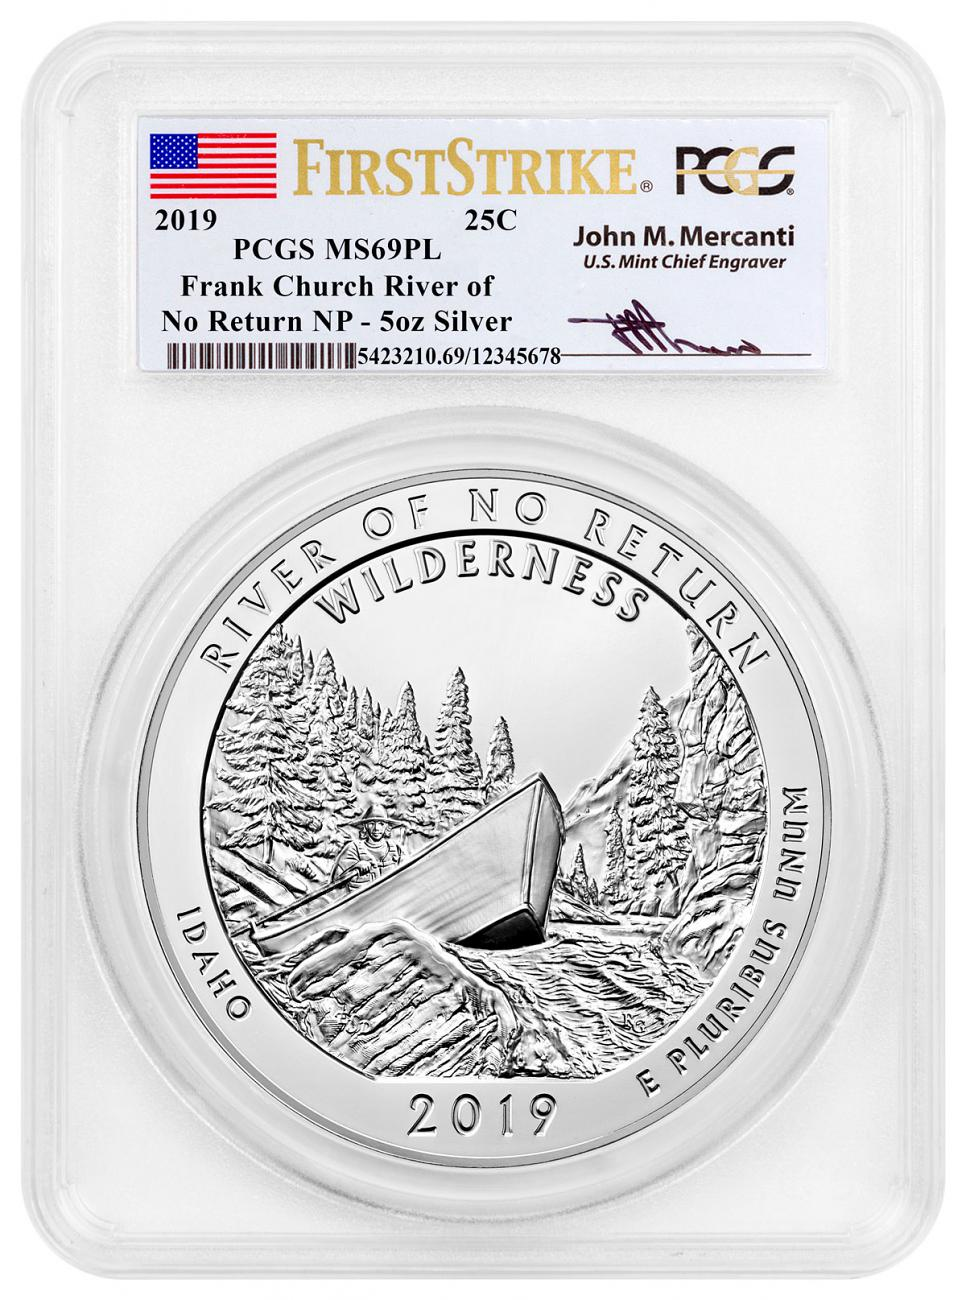 2019 25C Frank Church River of No Return (Idaho) 5 oz. Silver ATB America the Beautiful Coin PCGS MS69 PL FS Mercanti Signed Label